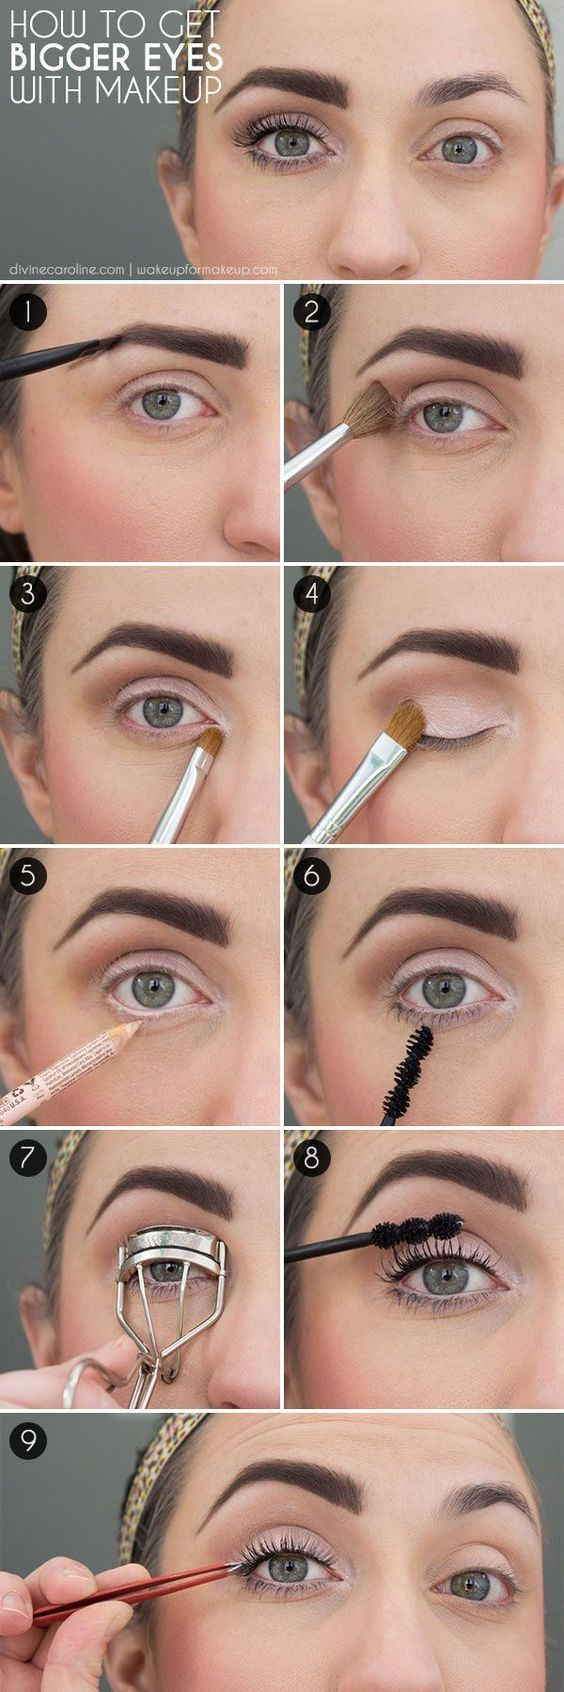 15 Makeup Ideas for Going Back to Office